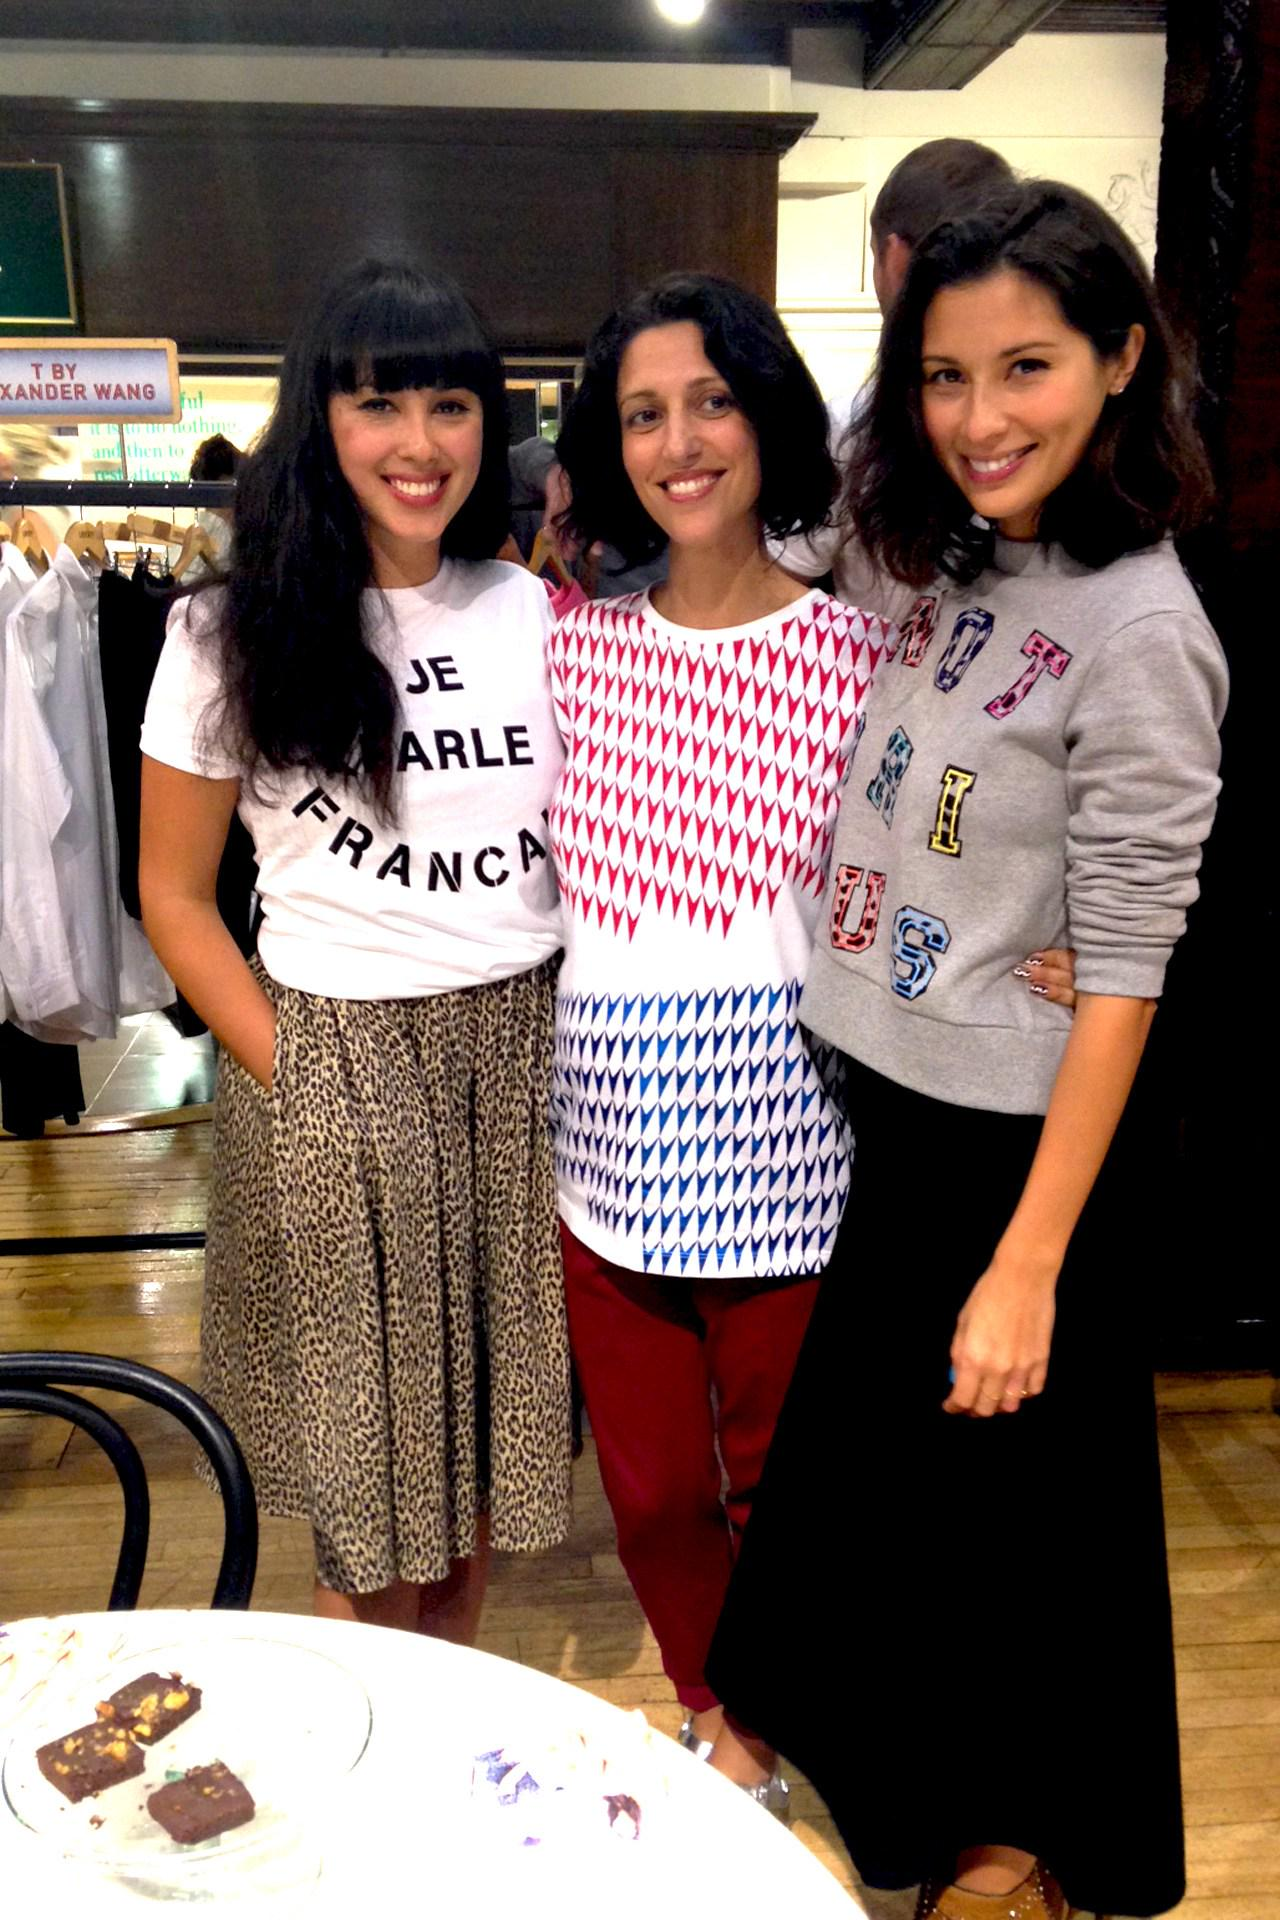 Why Vogue's #FNO love is focused on just one famous London street this year: http://t.co/JPCMONJrZ0 http://t.co/41pphTOzwJ